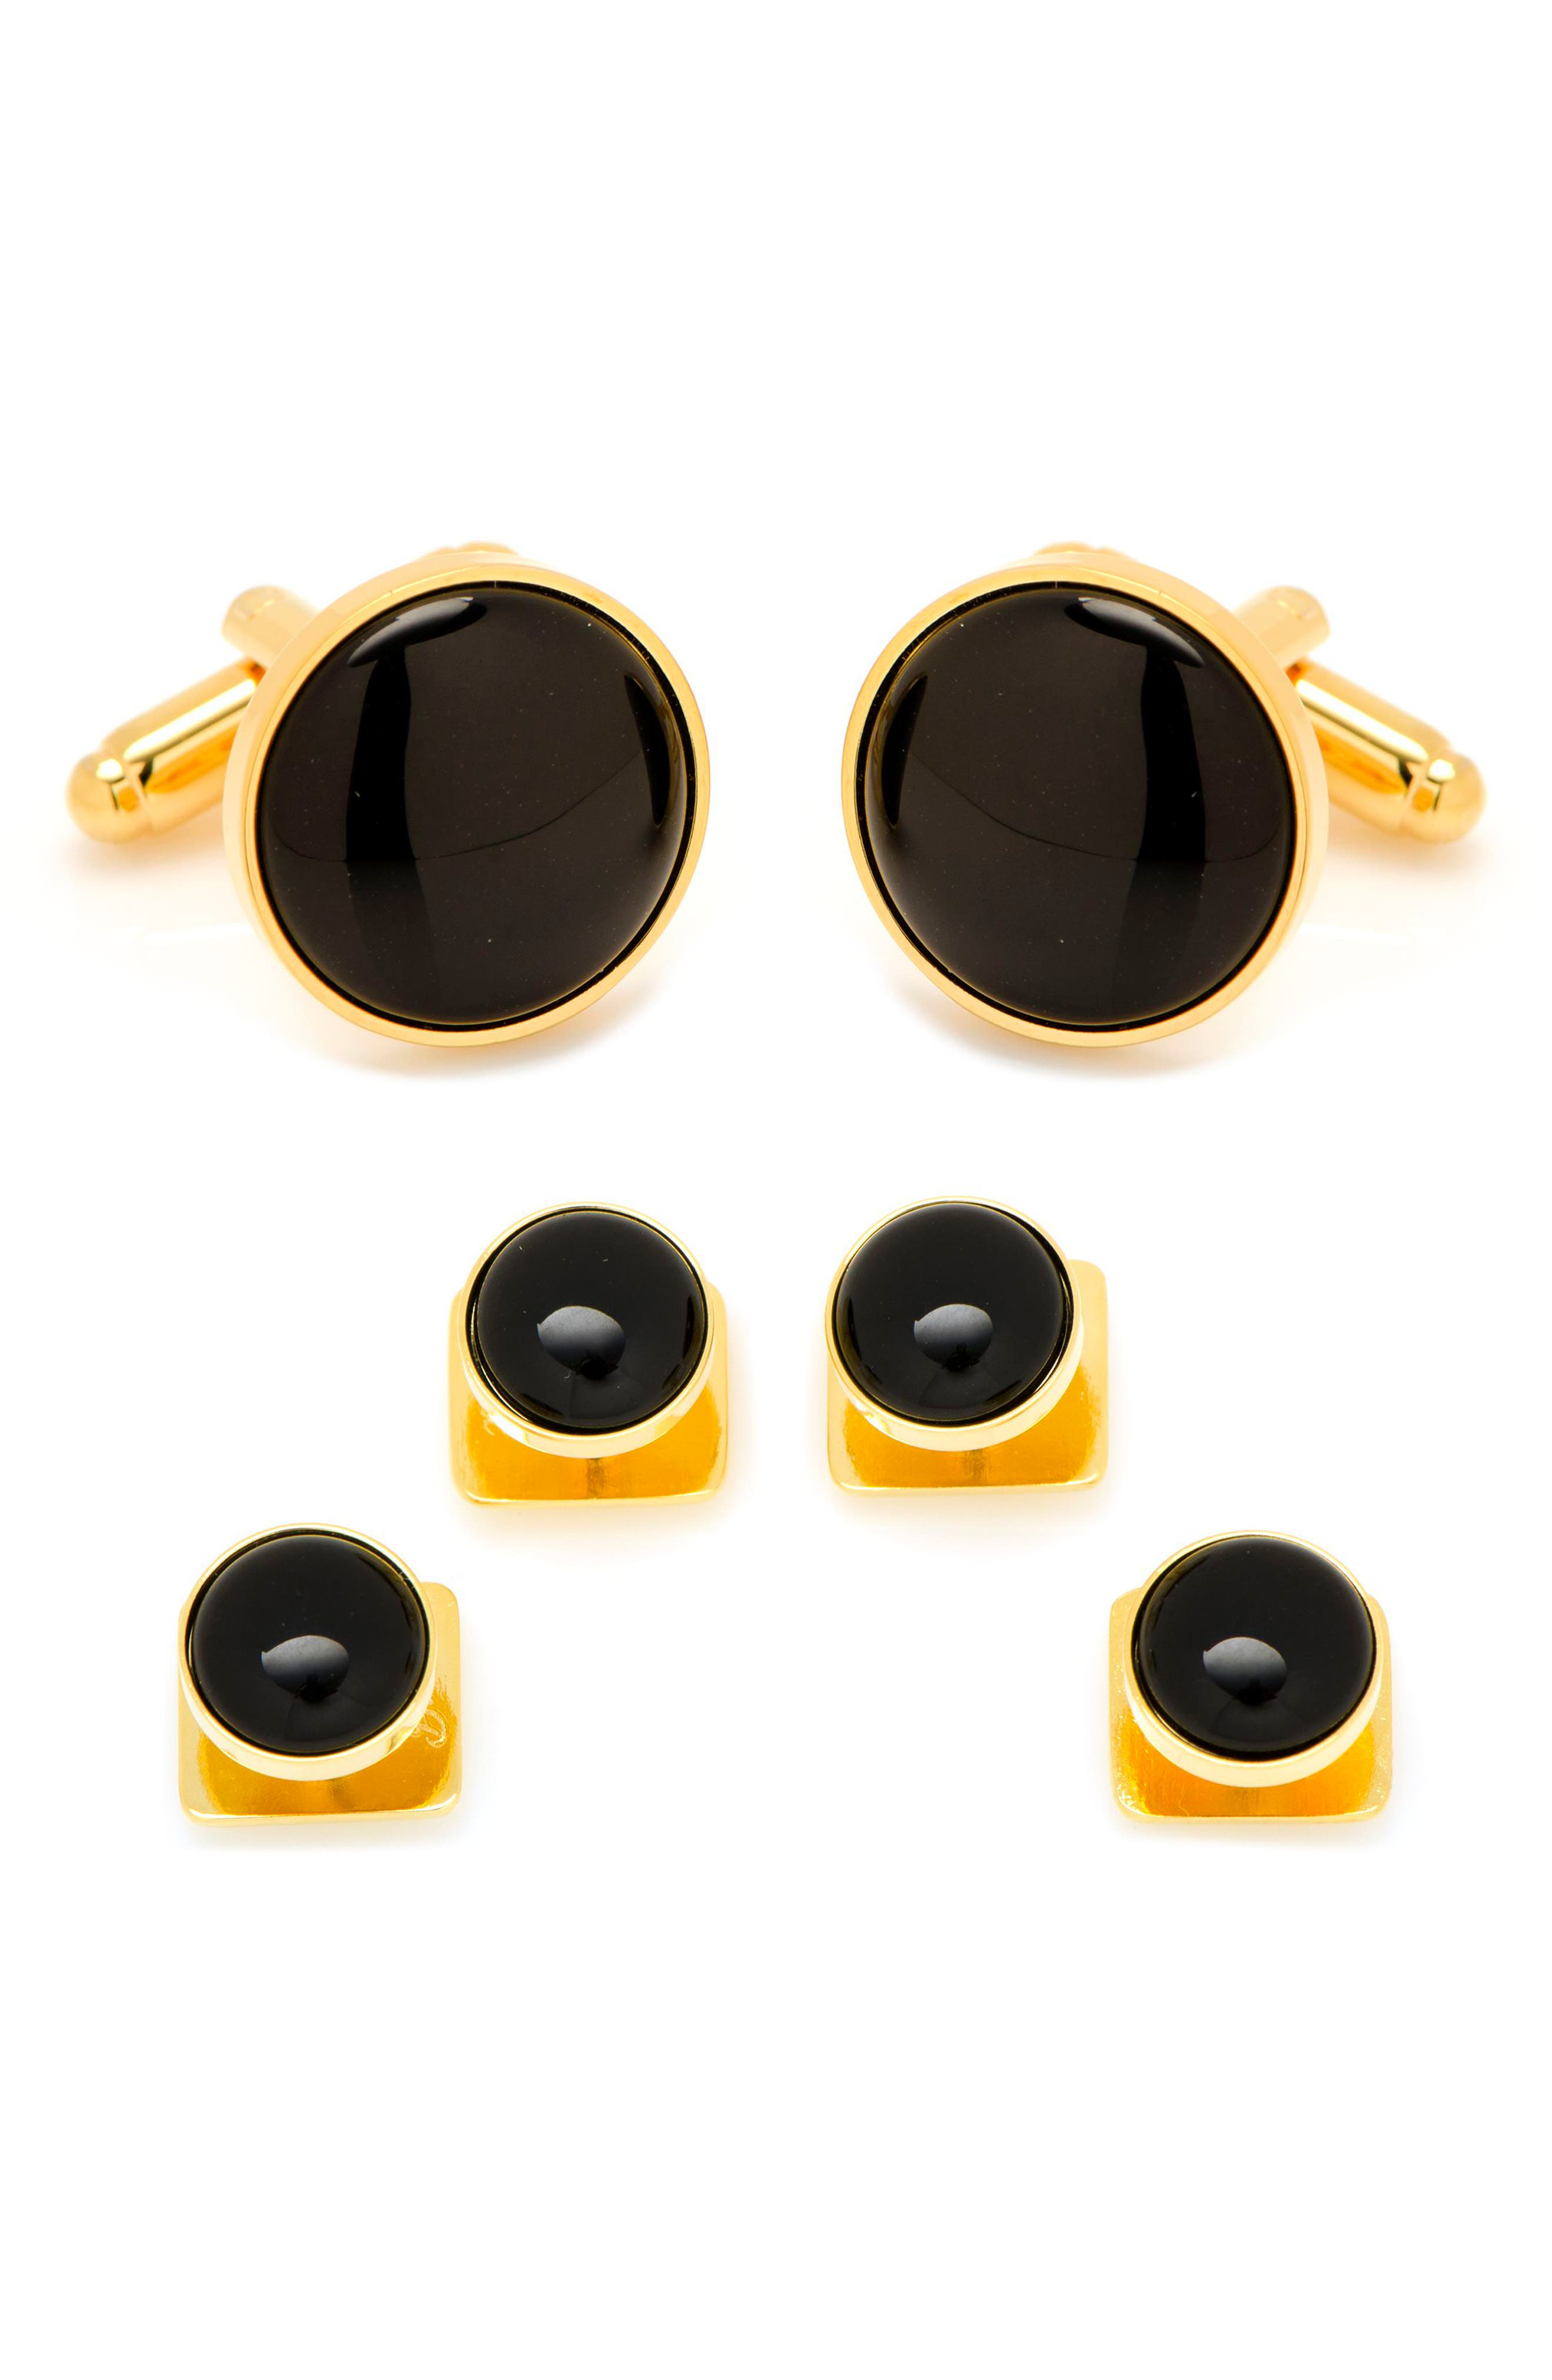 Edwardian Titanic Mens Formal Suit Guide Mens Cufflinks Inc. Onyx Cuff Link  Stud Set $95.00 AT vintagedancer.com